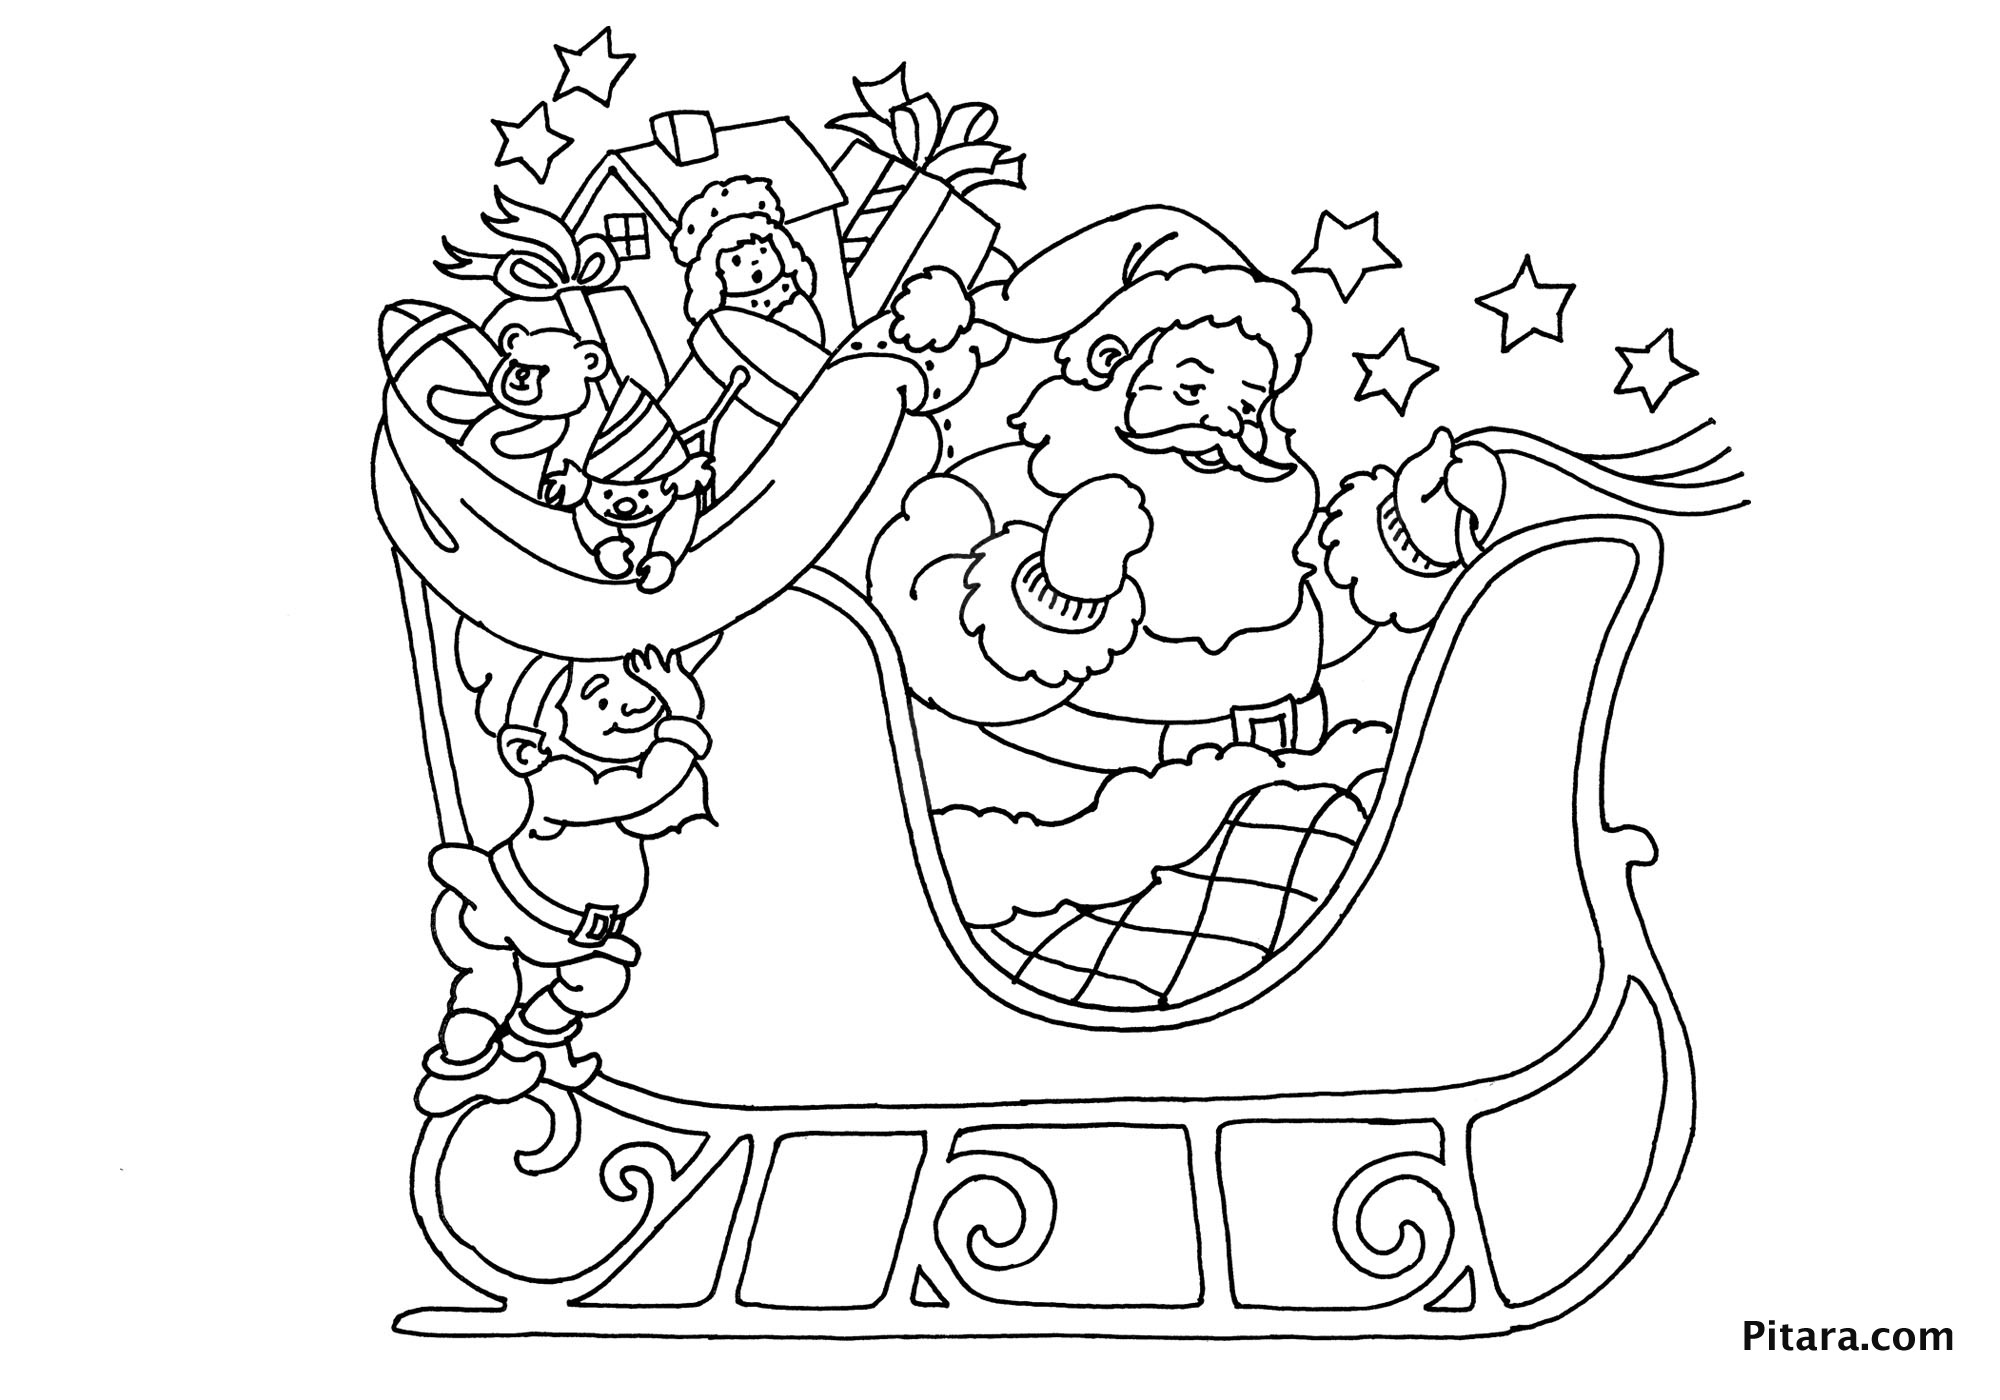 santa in a sleigh coloring page santa in sleigh coloring pages download and print for free in a coloring santa page sleigh